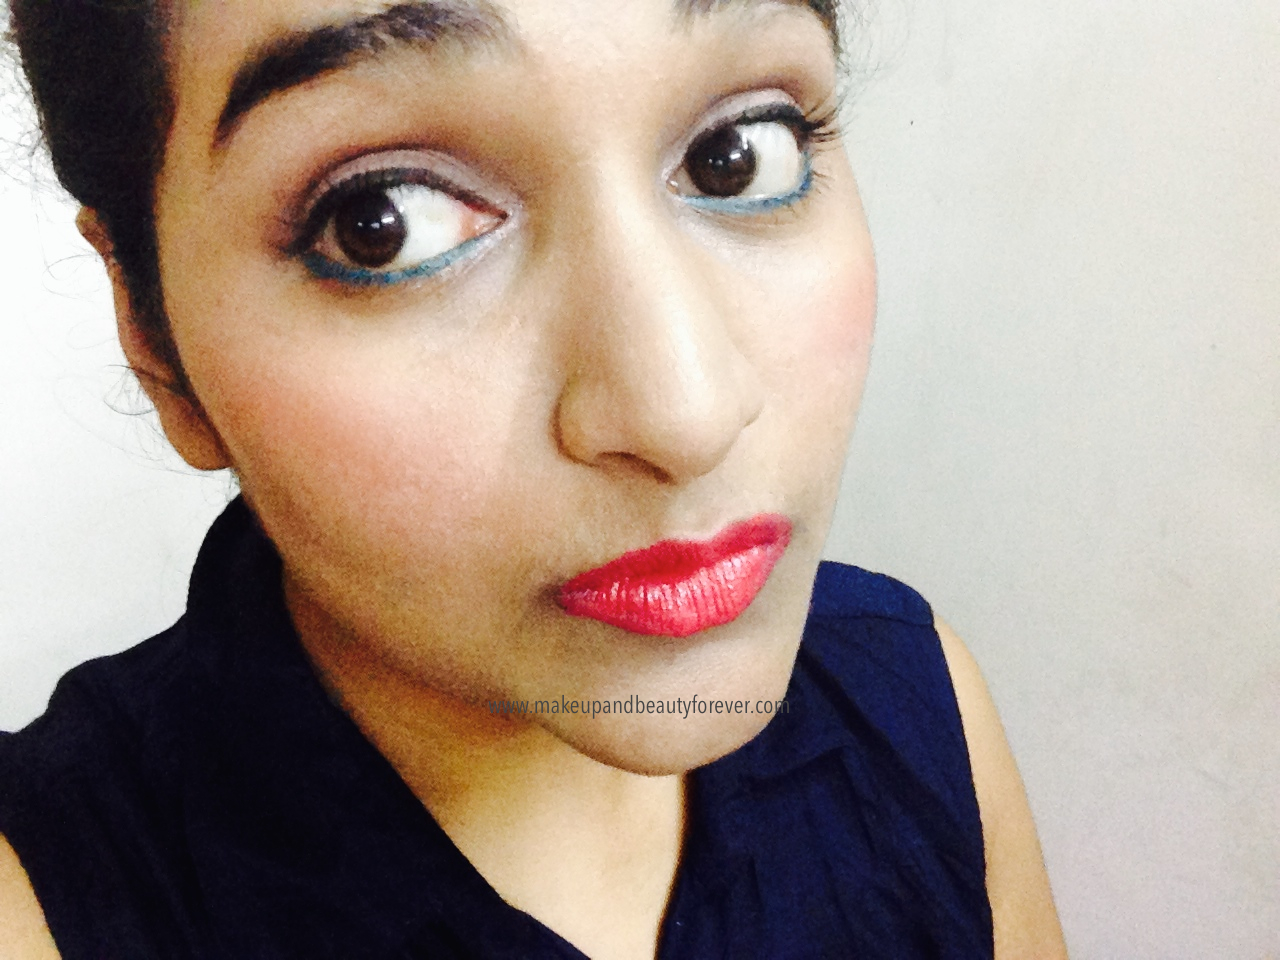 maybelline color show lipstick cherry crush 207 review swatch